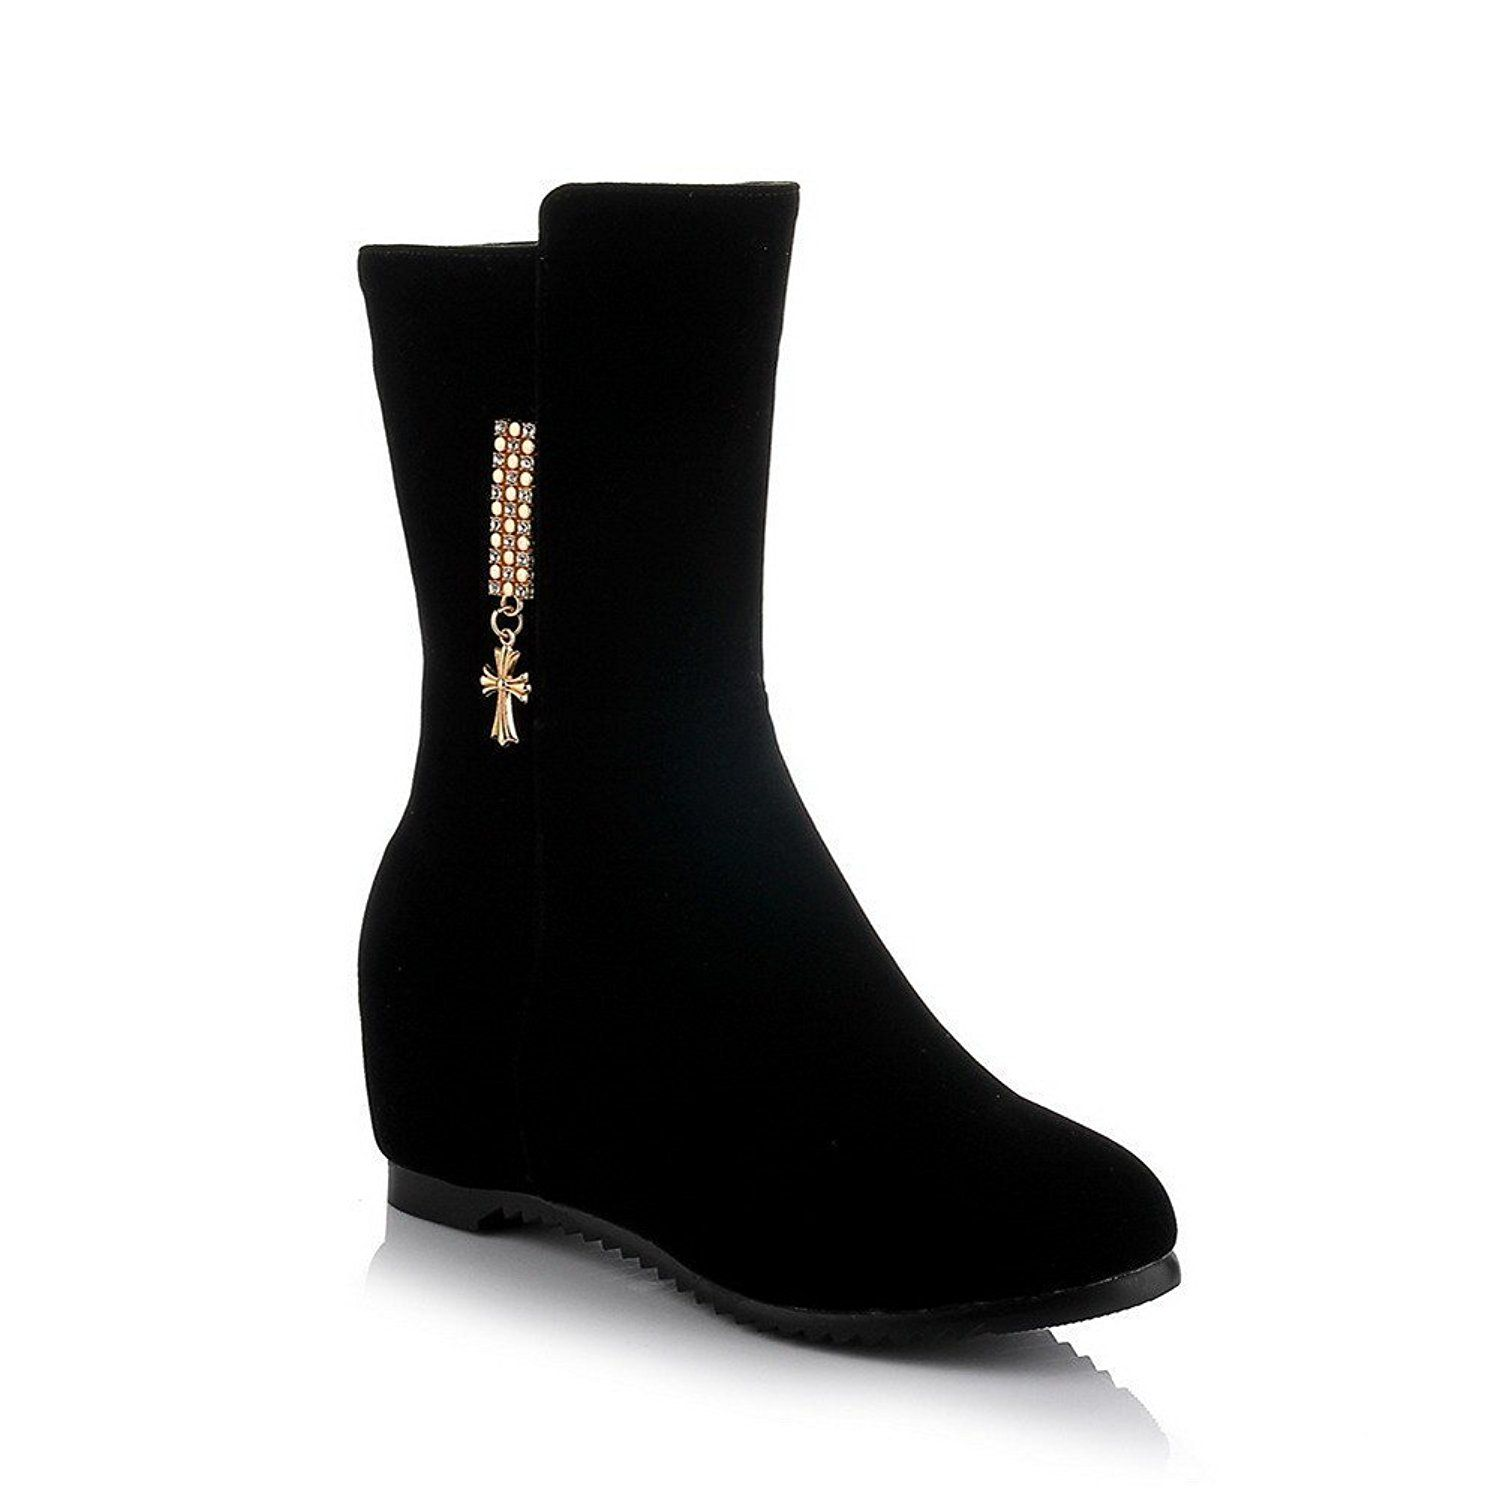 Voguezone009 Women S Round Closed Toe Kitten Heels Frosted Solid Mid Top Boots Startling Review Availab Boots Kitten Heel Boots Women S Over The Knee Boots